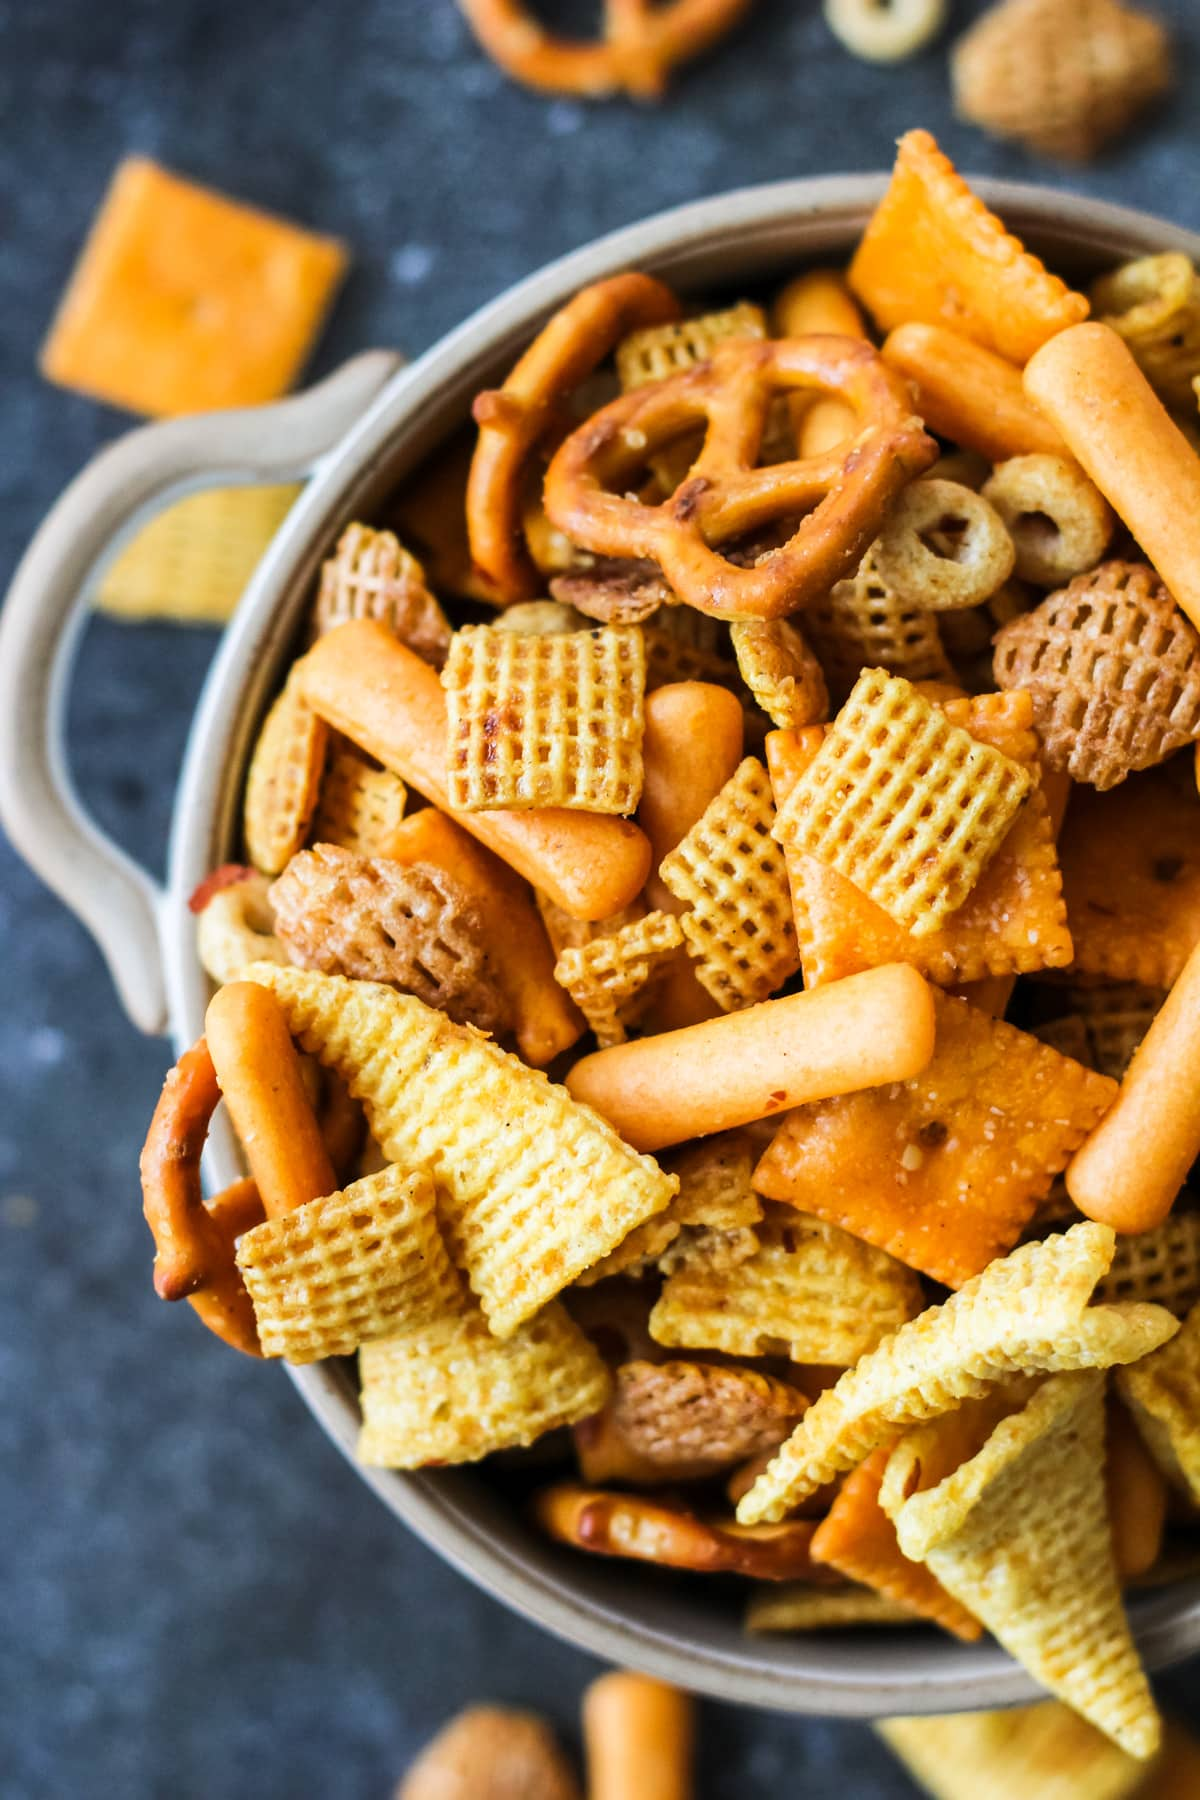 a top down close up of a bowl of Nuts and Bolts with cheerios, bugles, pretzels, nuts and cereal